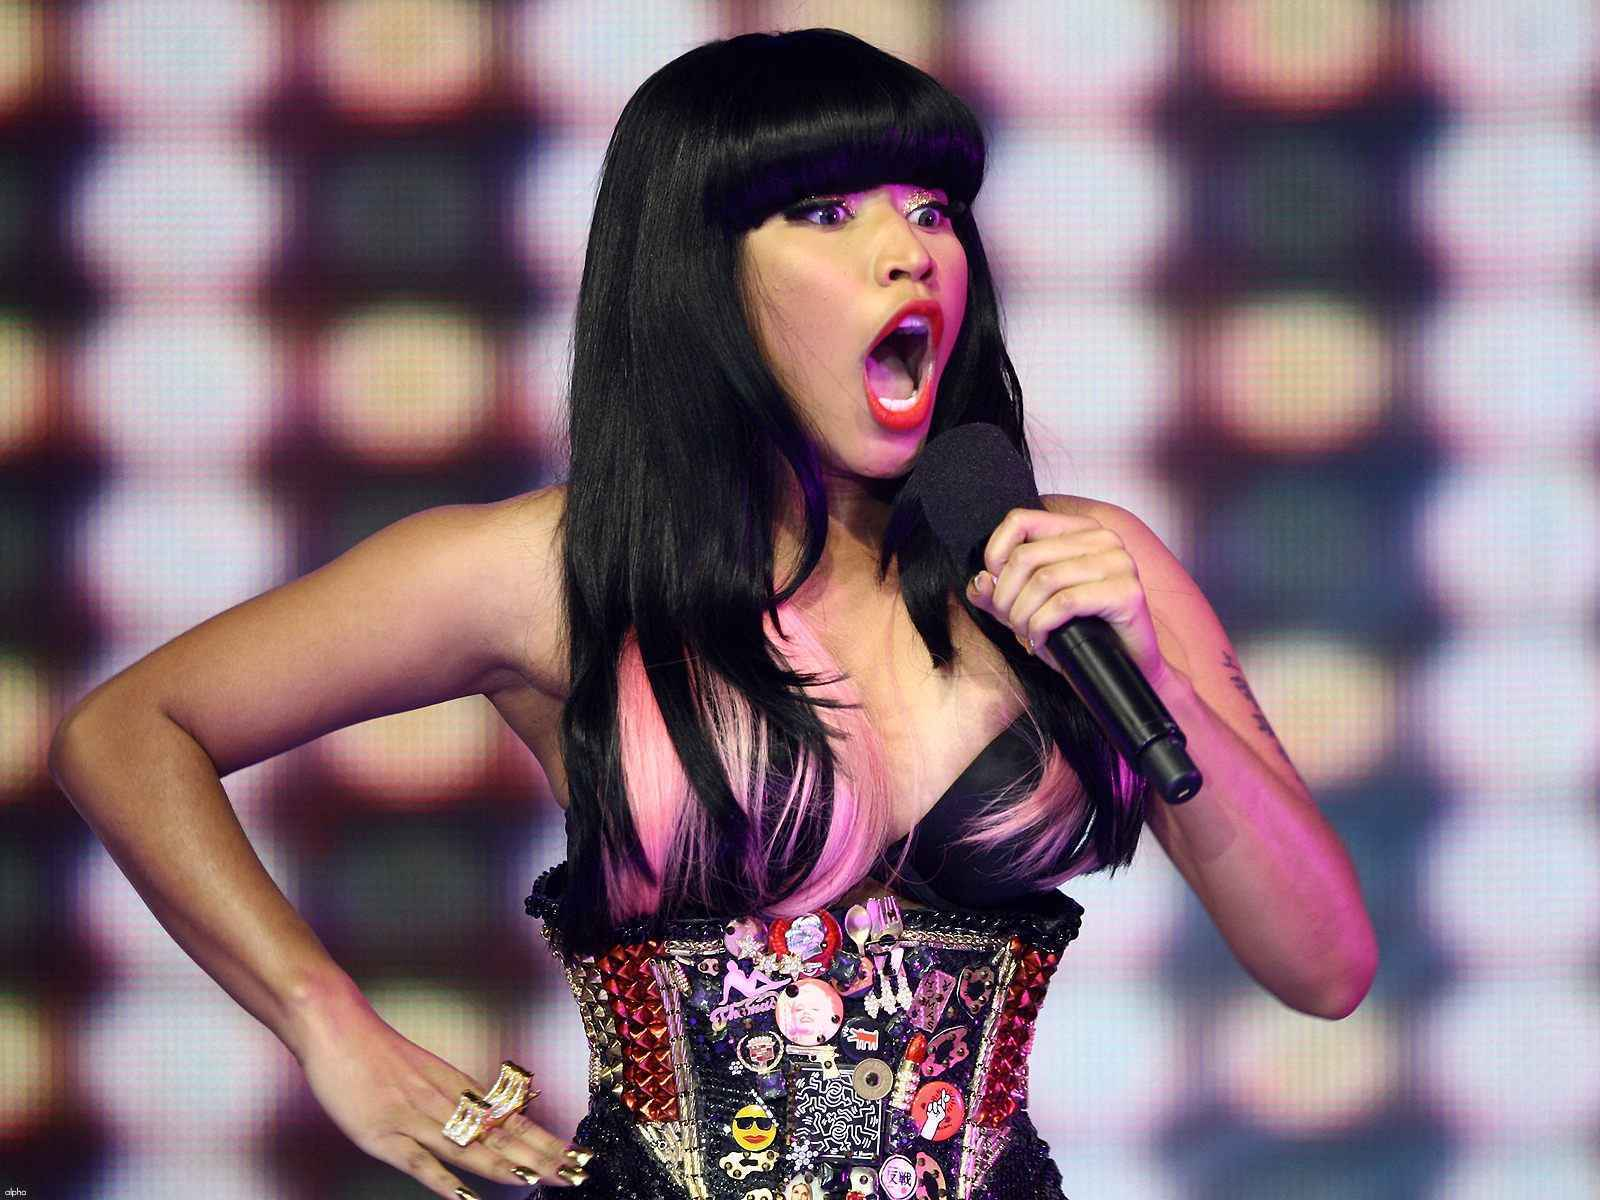 Nicki Minaj Hd Wallpapers Amp Pictures Hd Wallpapers